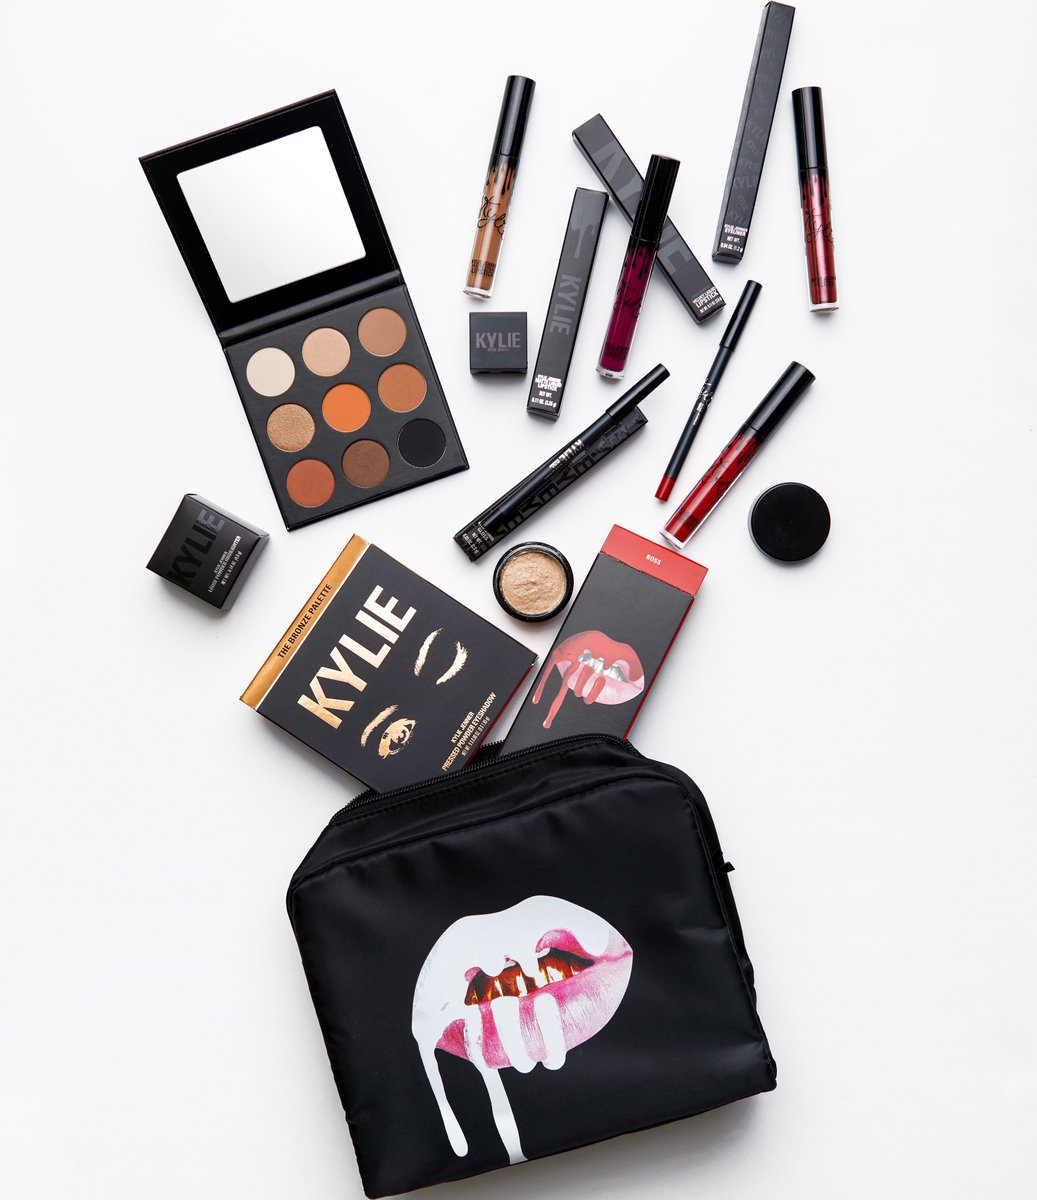 just dropped my December favorites bundle!! A $181 value for only $100! https://t.co/FDoyTz5yaW https://t.co/SZnkOgSyuh